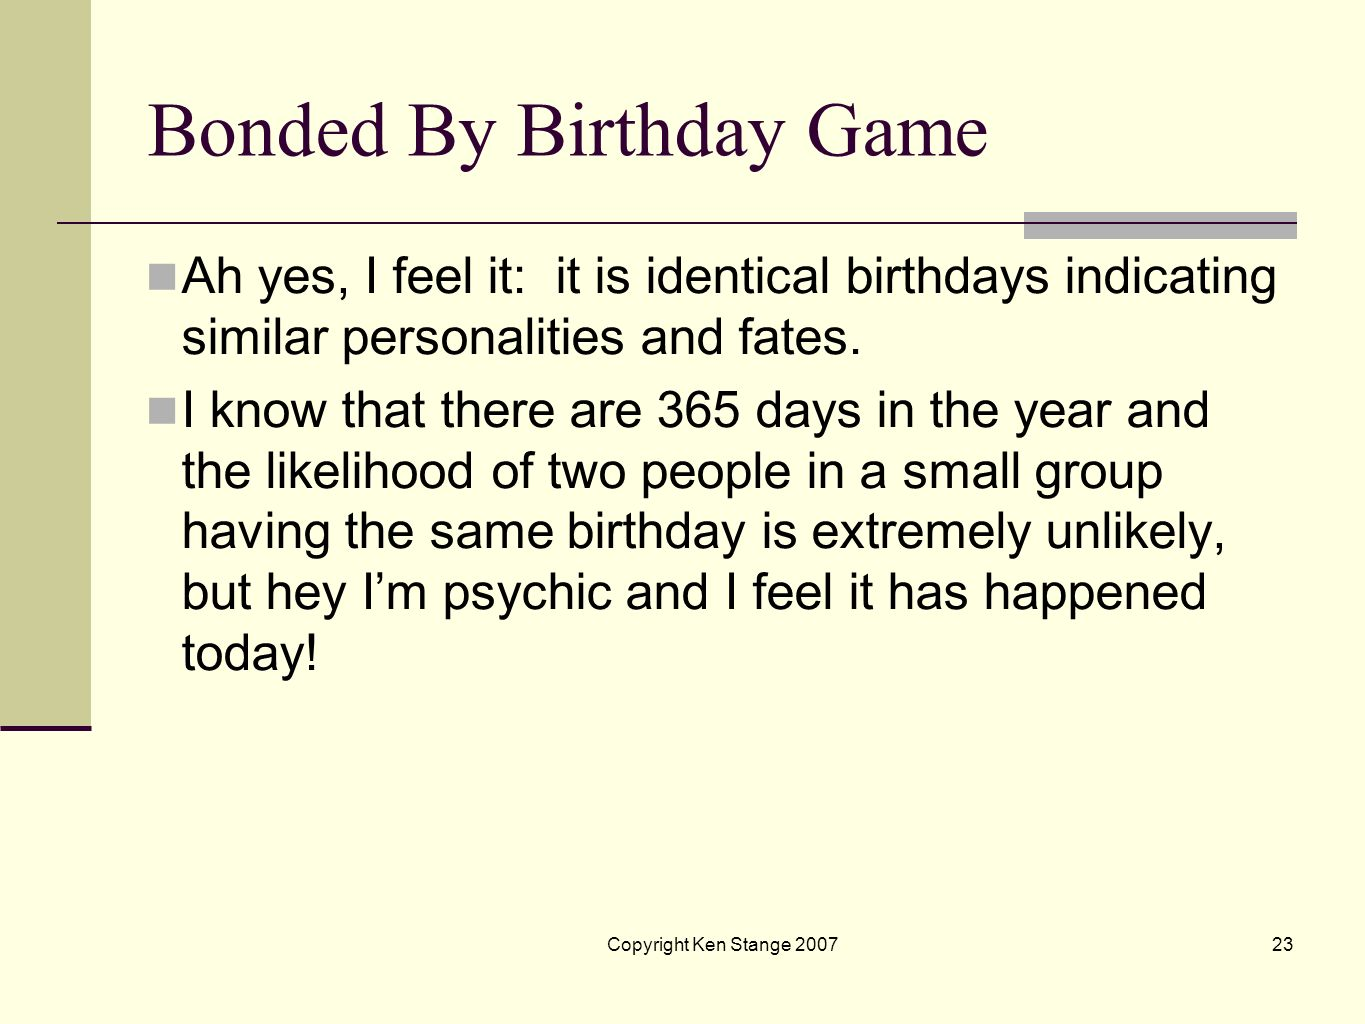 Copyright Ken Stange 200722 3: Bonded By Birthday Game As a psychic I can feel vibes that tell me there is an astrological bond between two individual